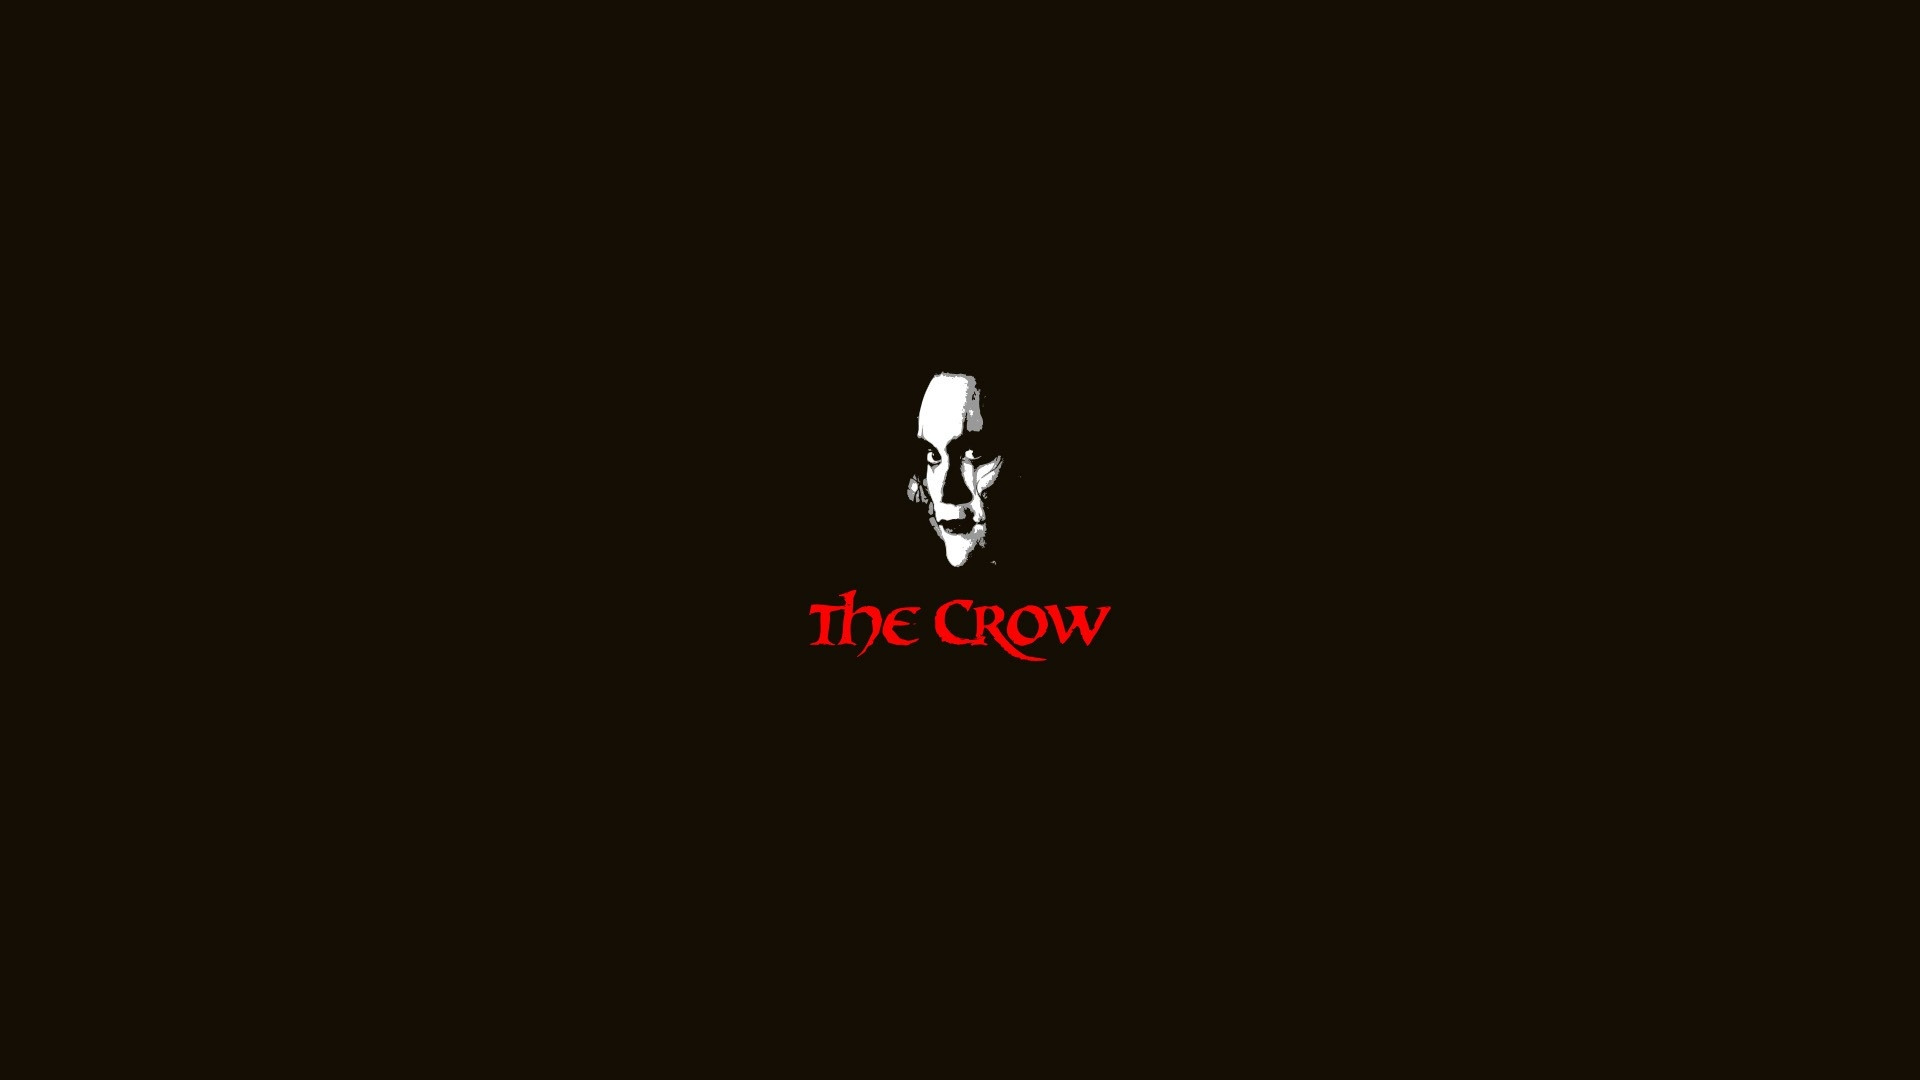 Download Wallpapers Download Movies The Crow Brandon Lee